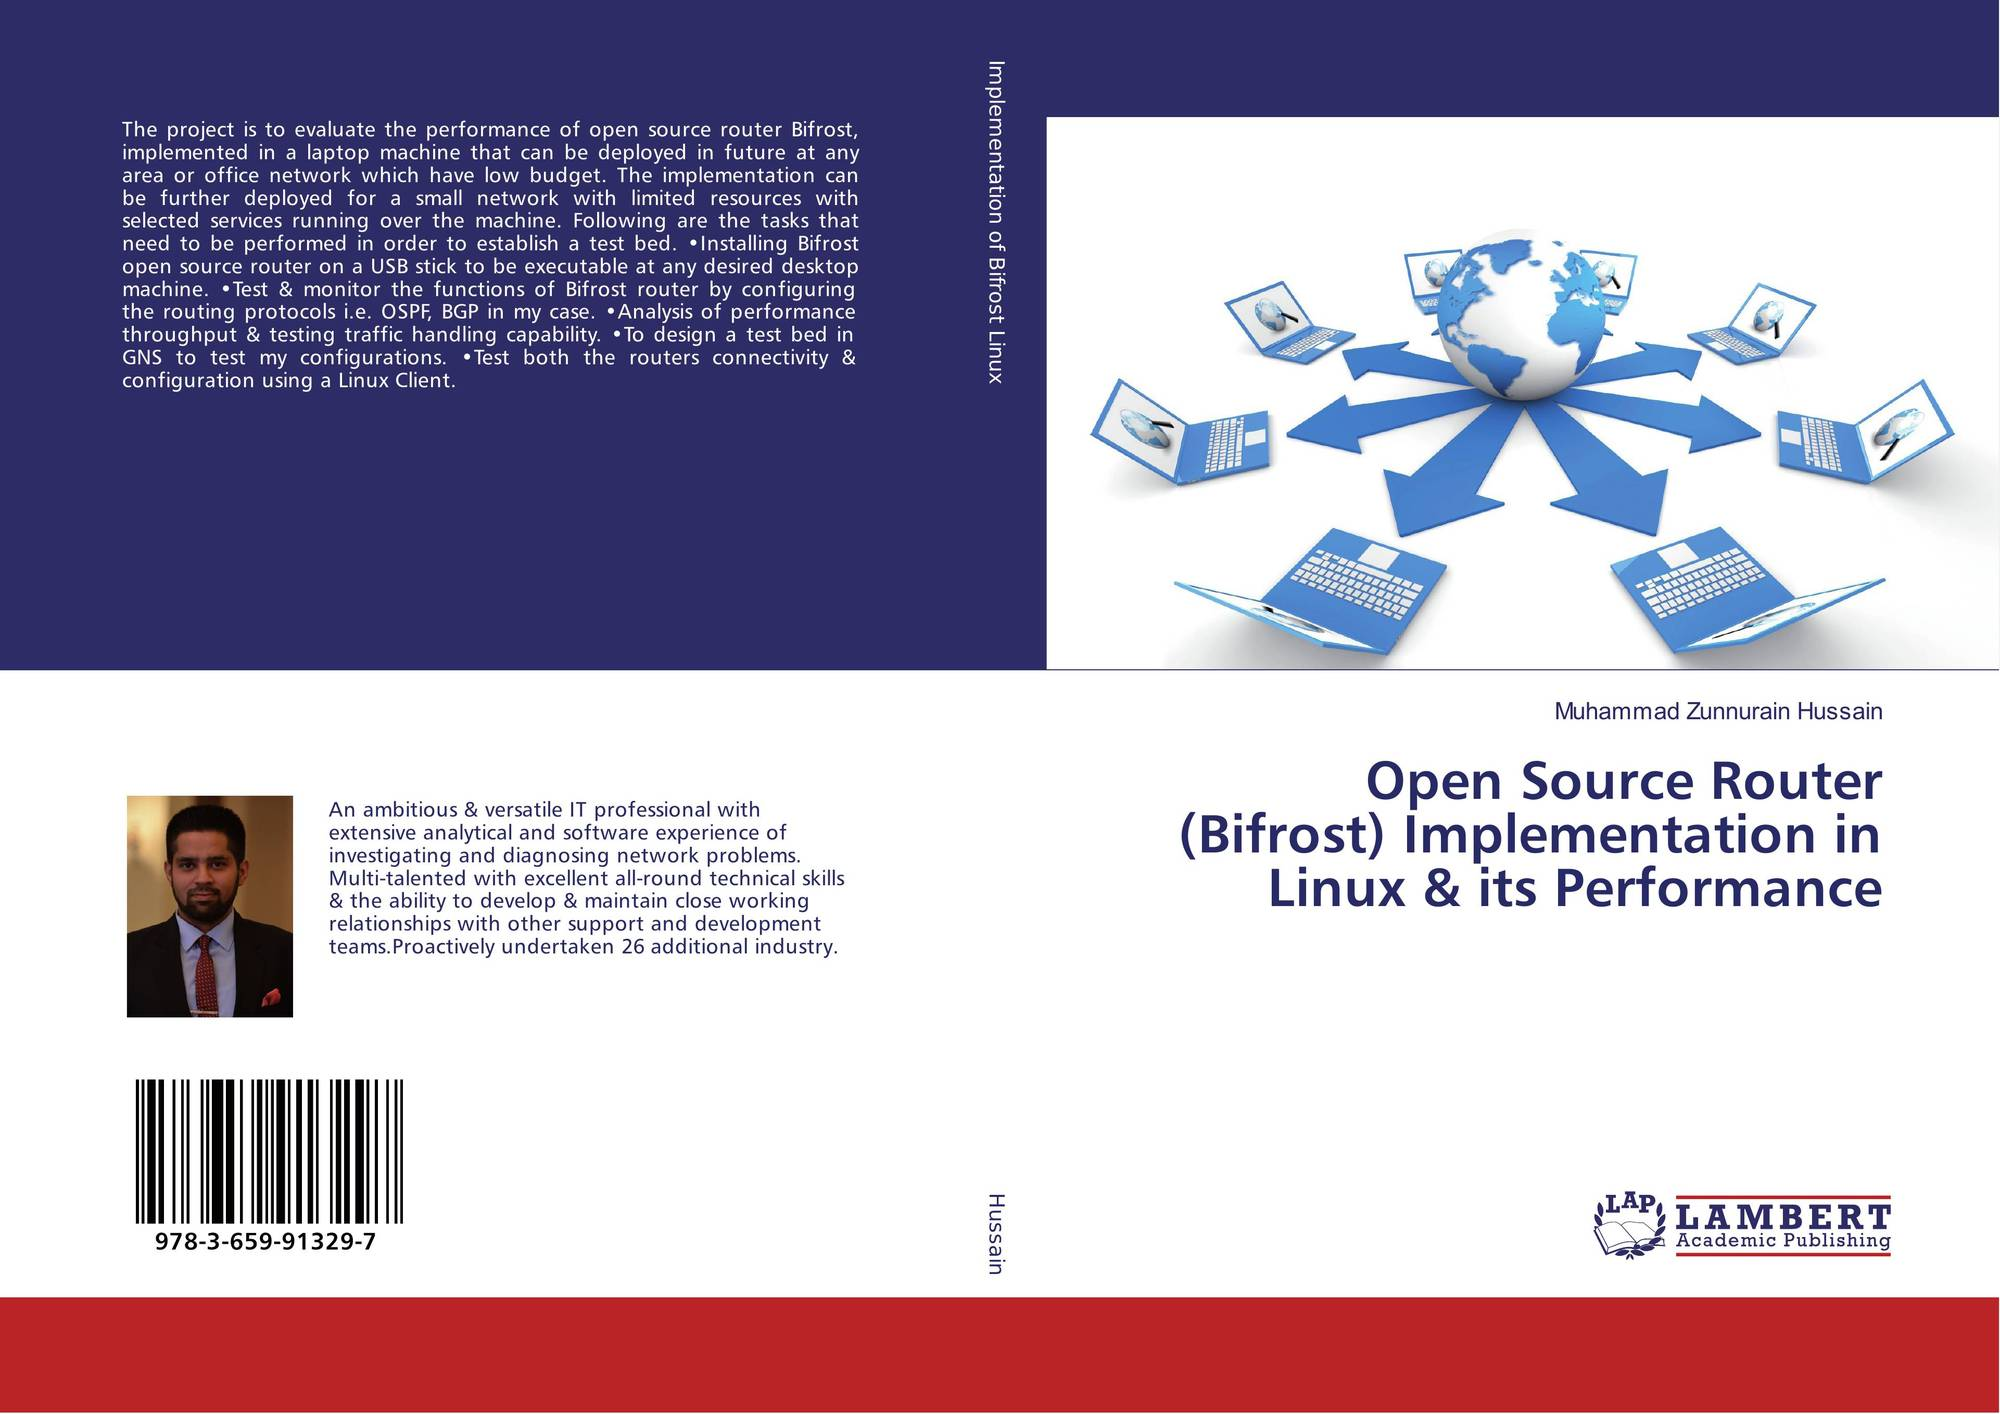 Open Source Router (Bifrost) Implementation in Linux & its